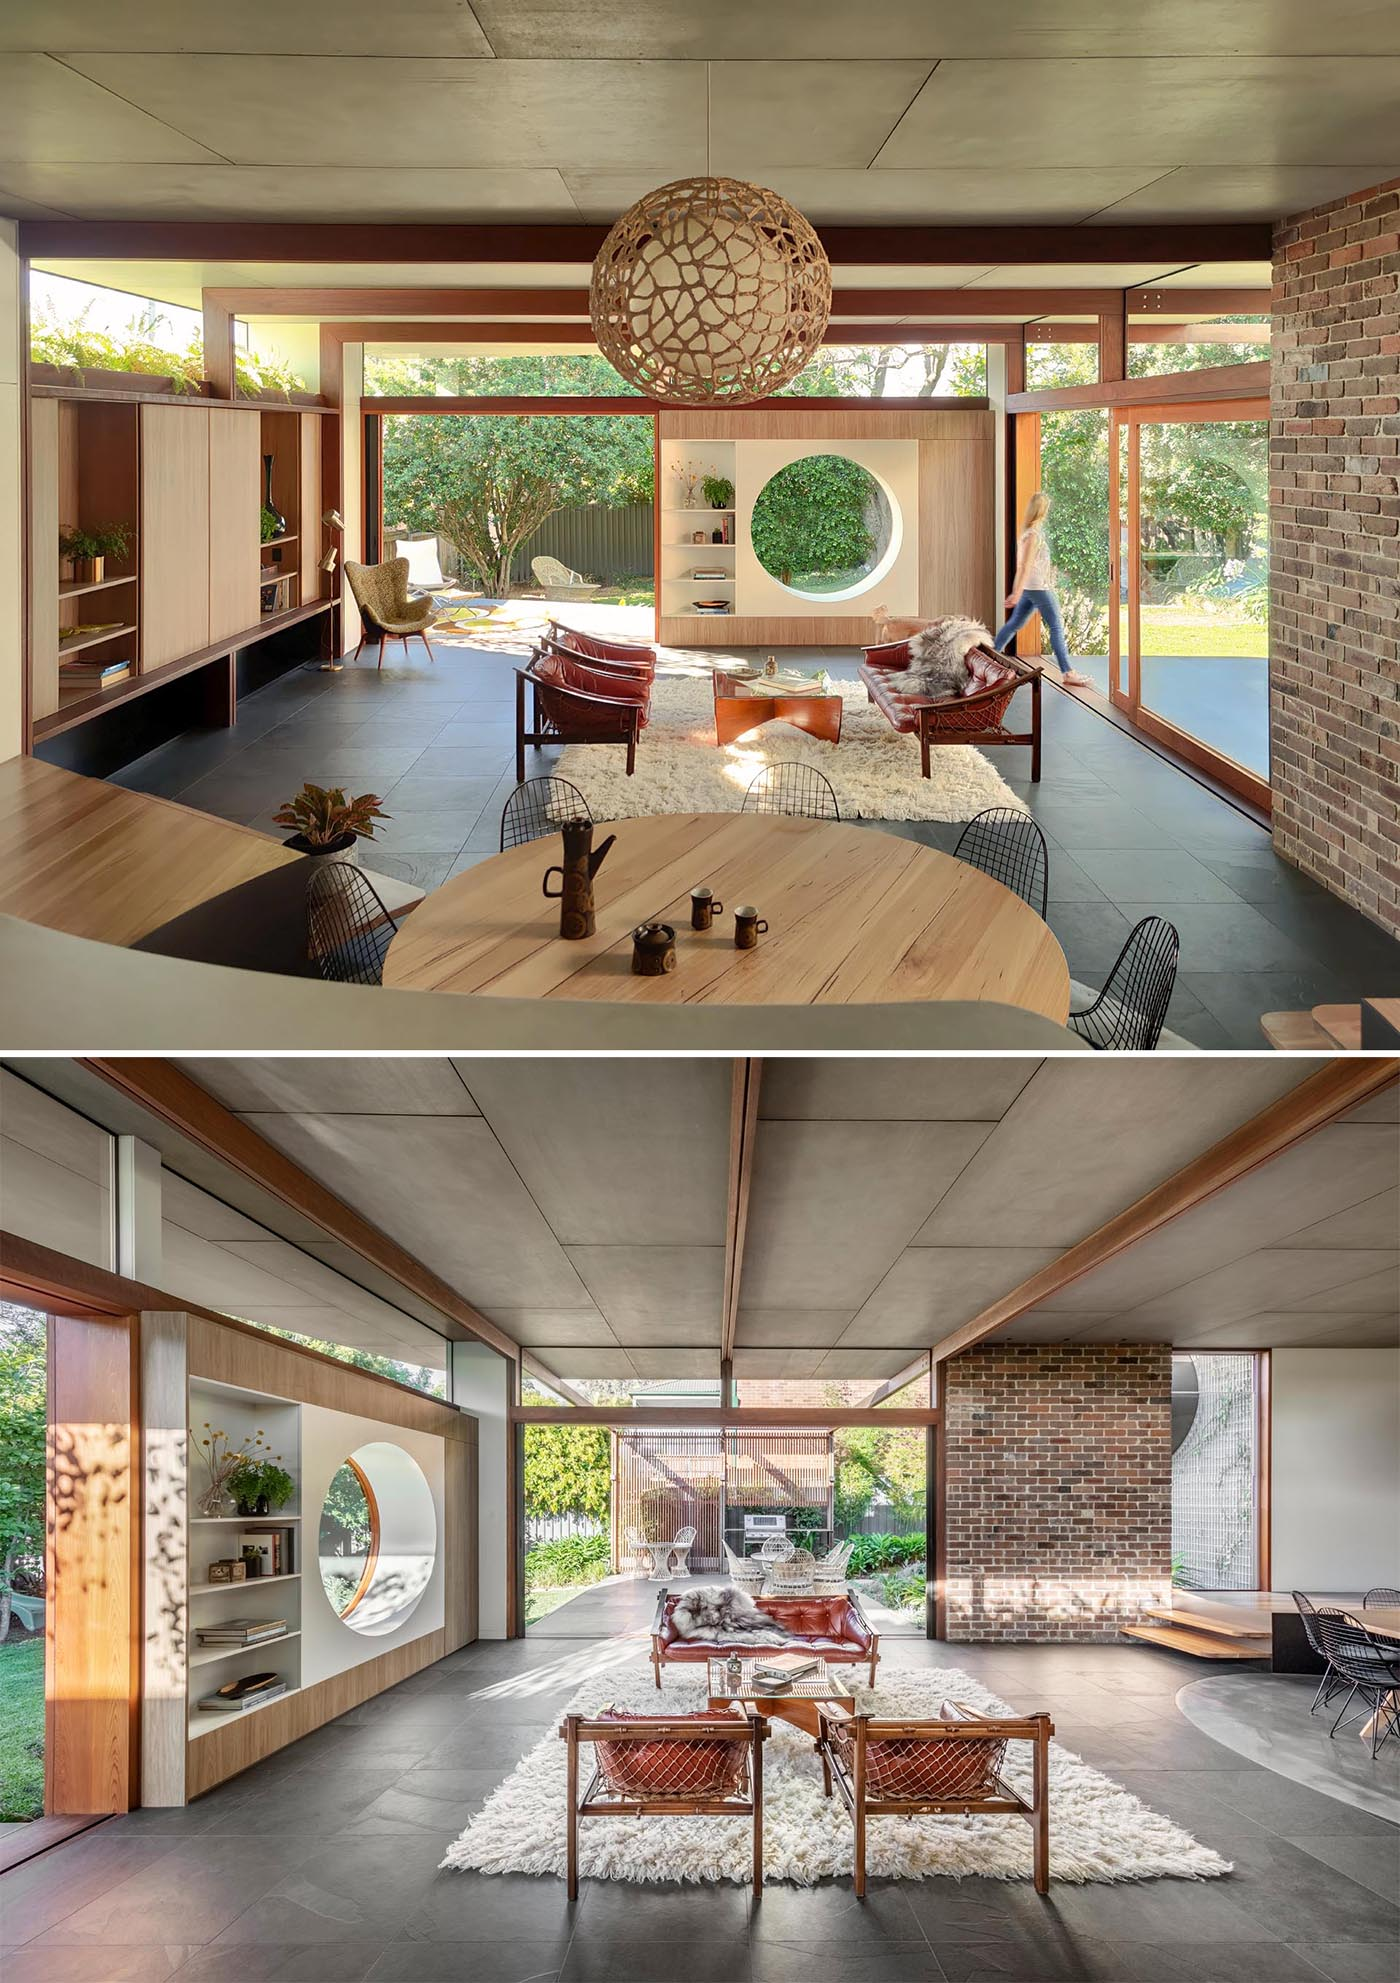 A modern living room with a circular window that's open to the outdoors.